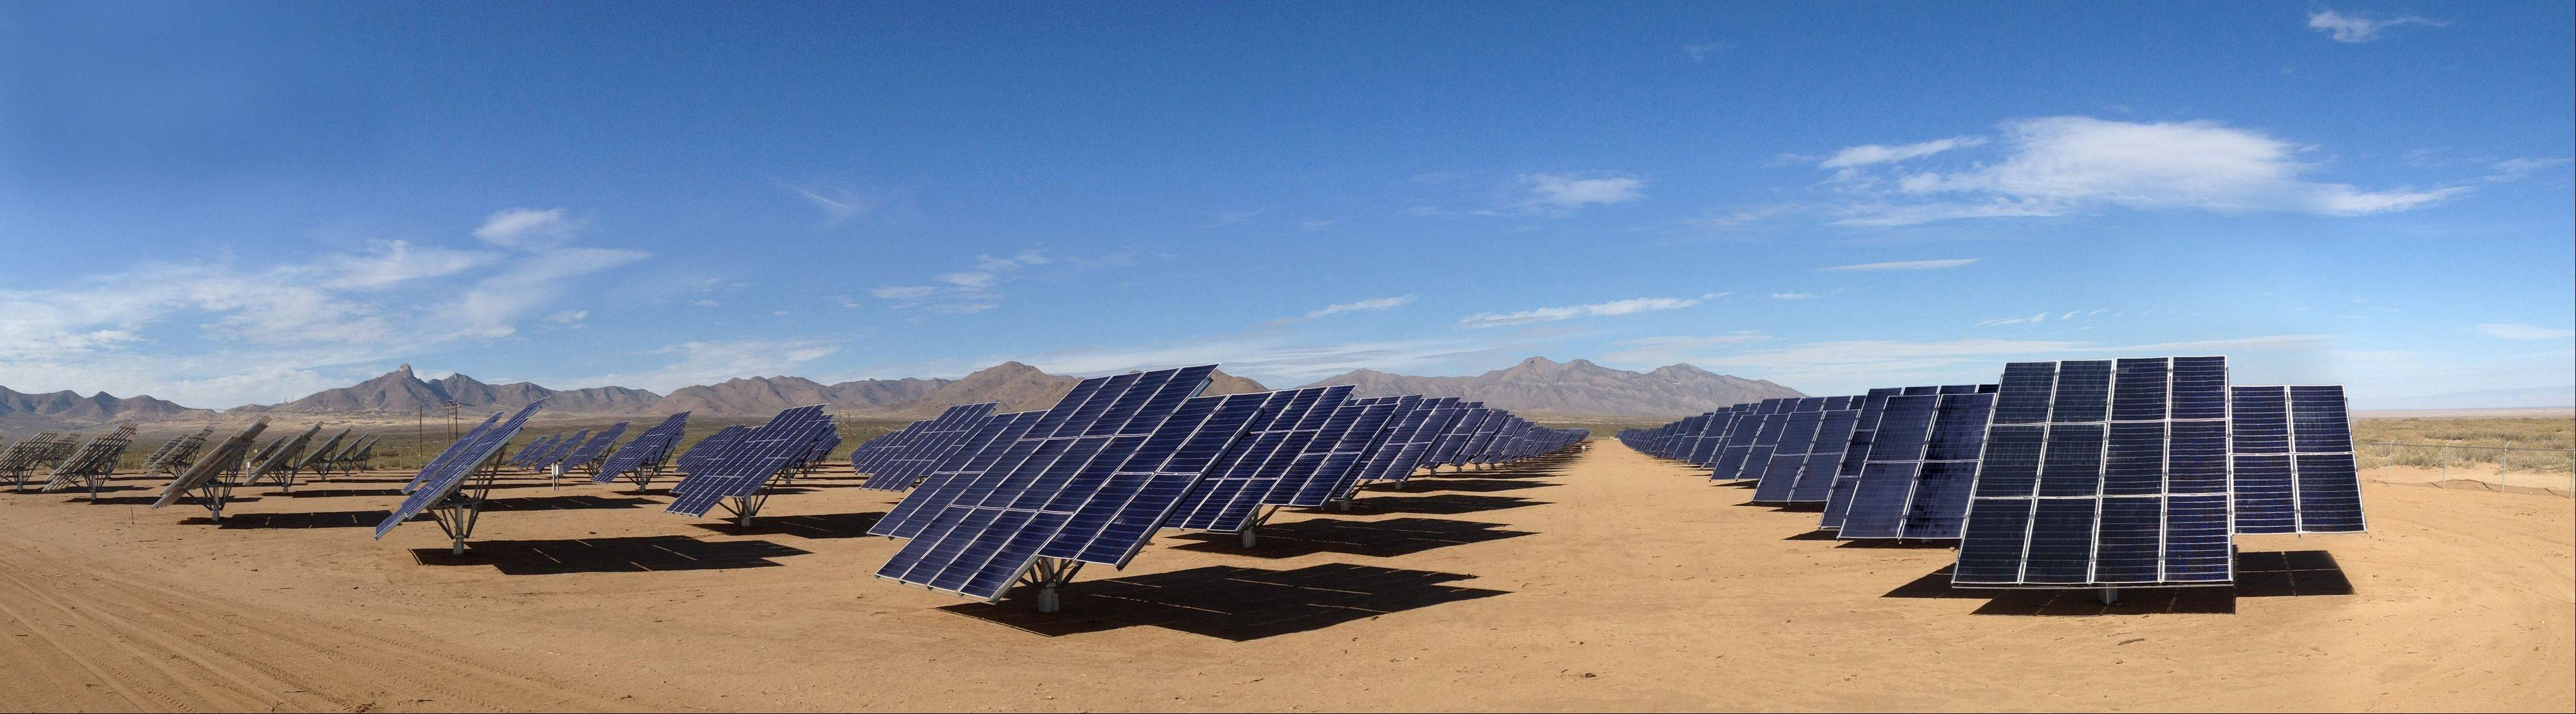 The Army's solar array at White Sands, N.M.